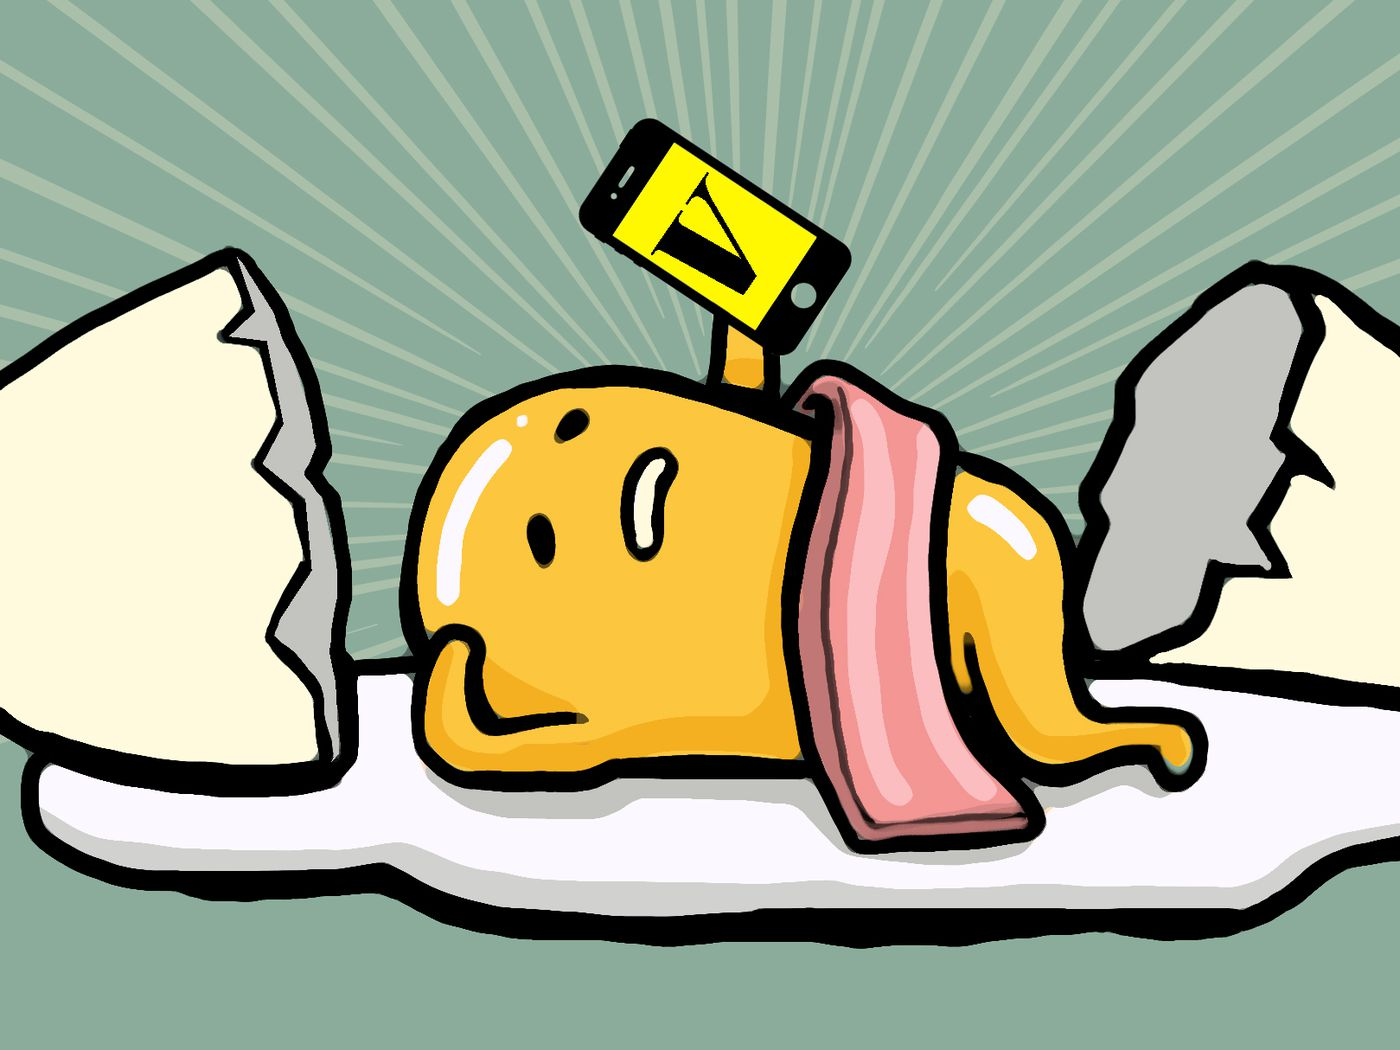 How Gudetama A Lazy Egg Yolk With Butt Became An Unstoppable Cultural Phenomenon